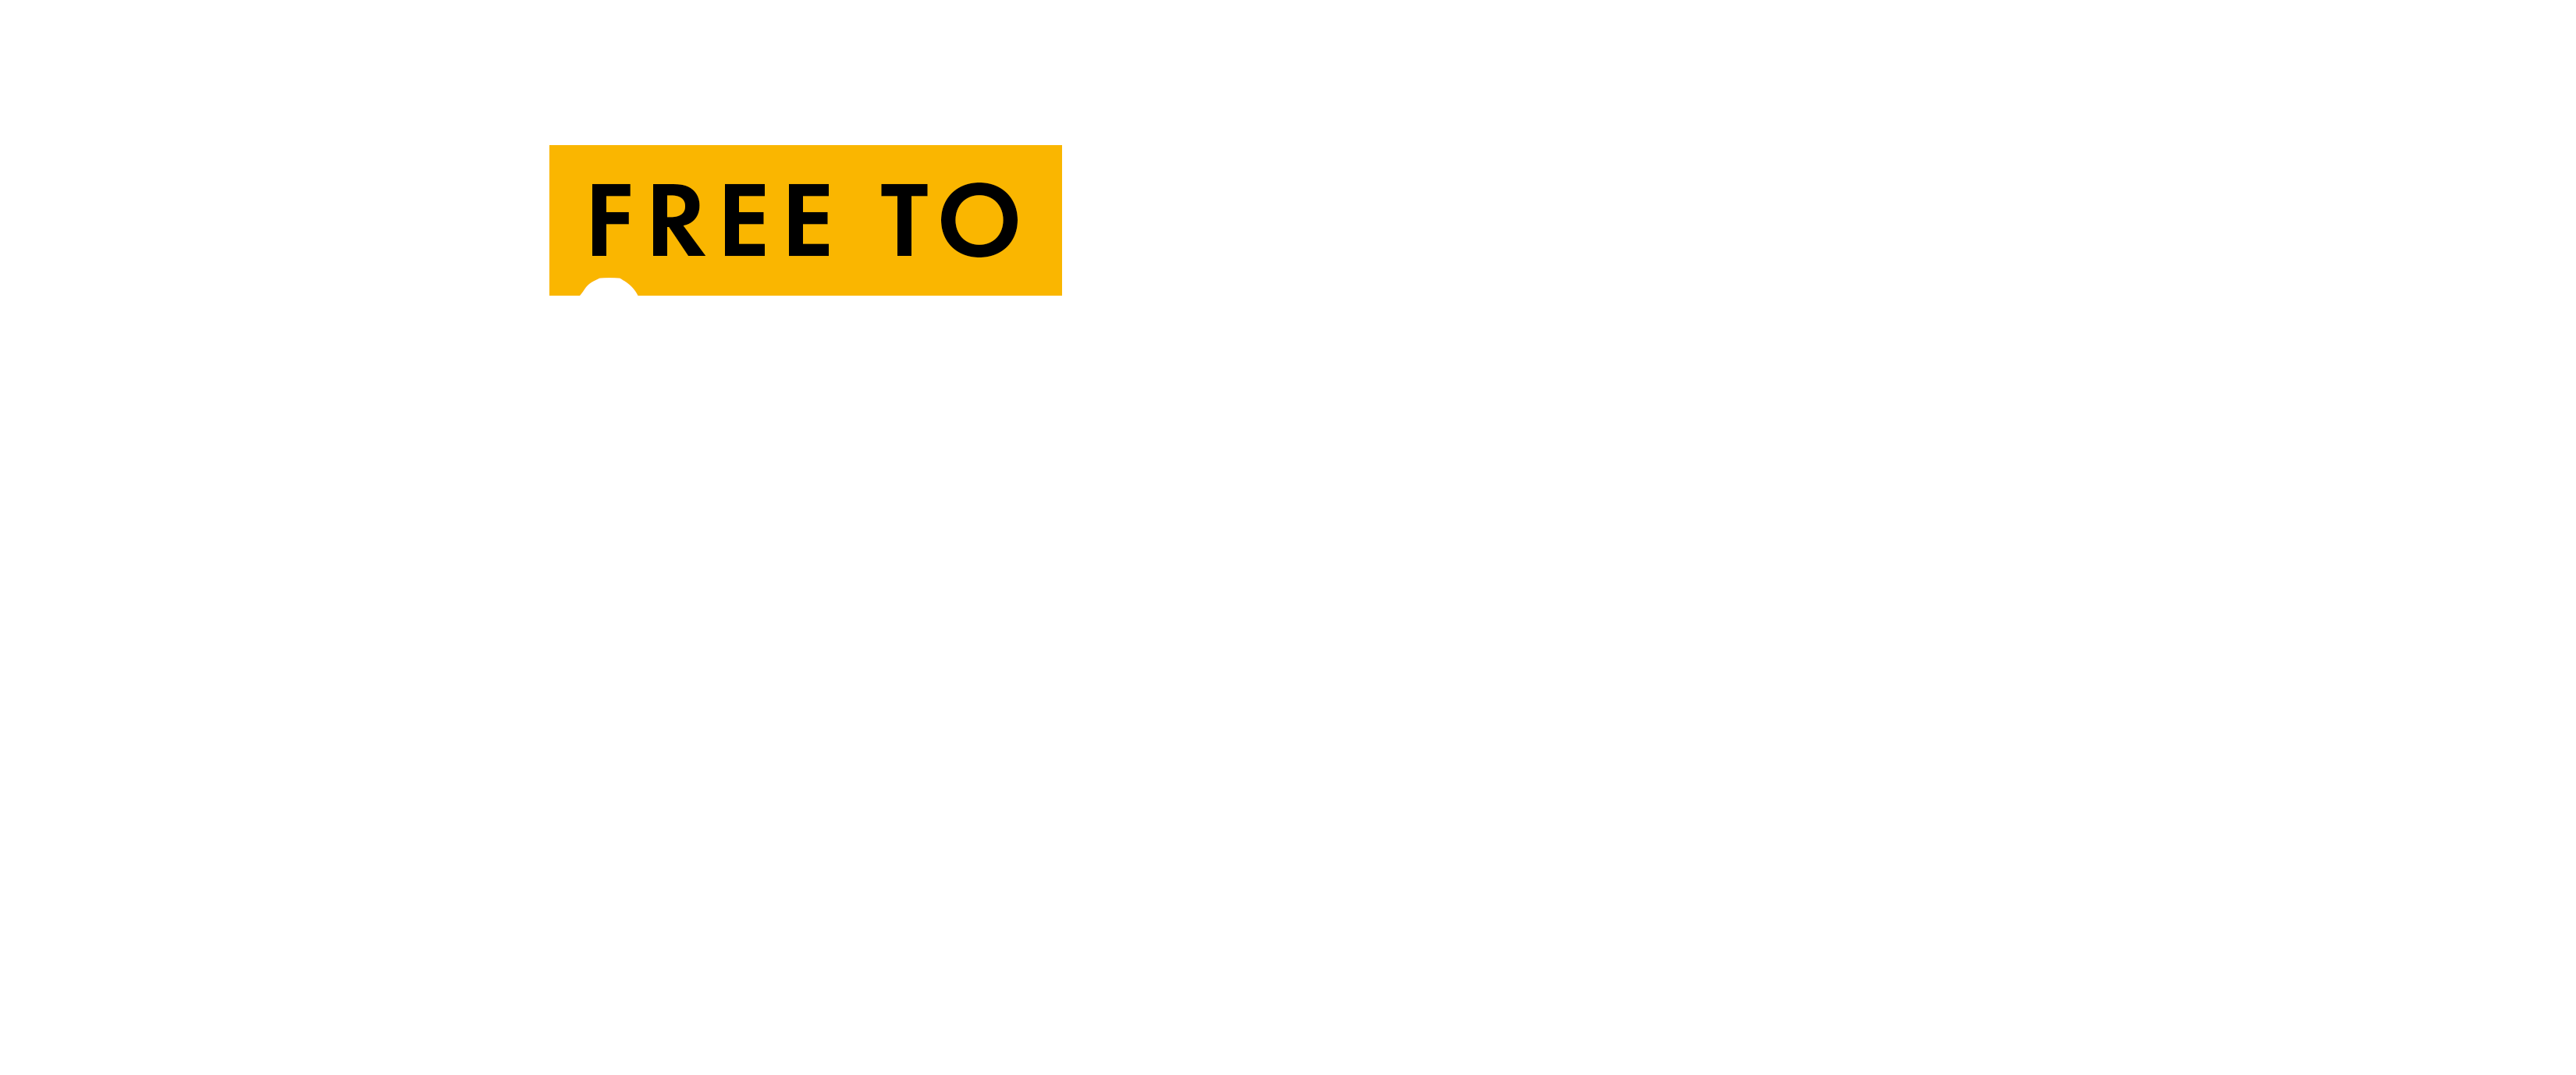 Free to believe text white cropped